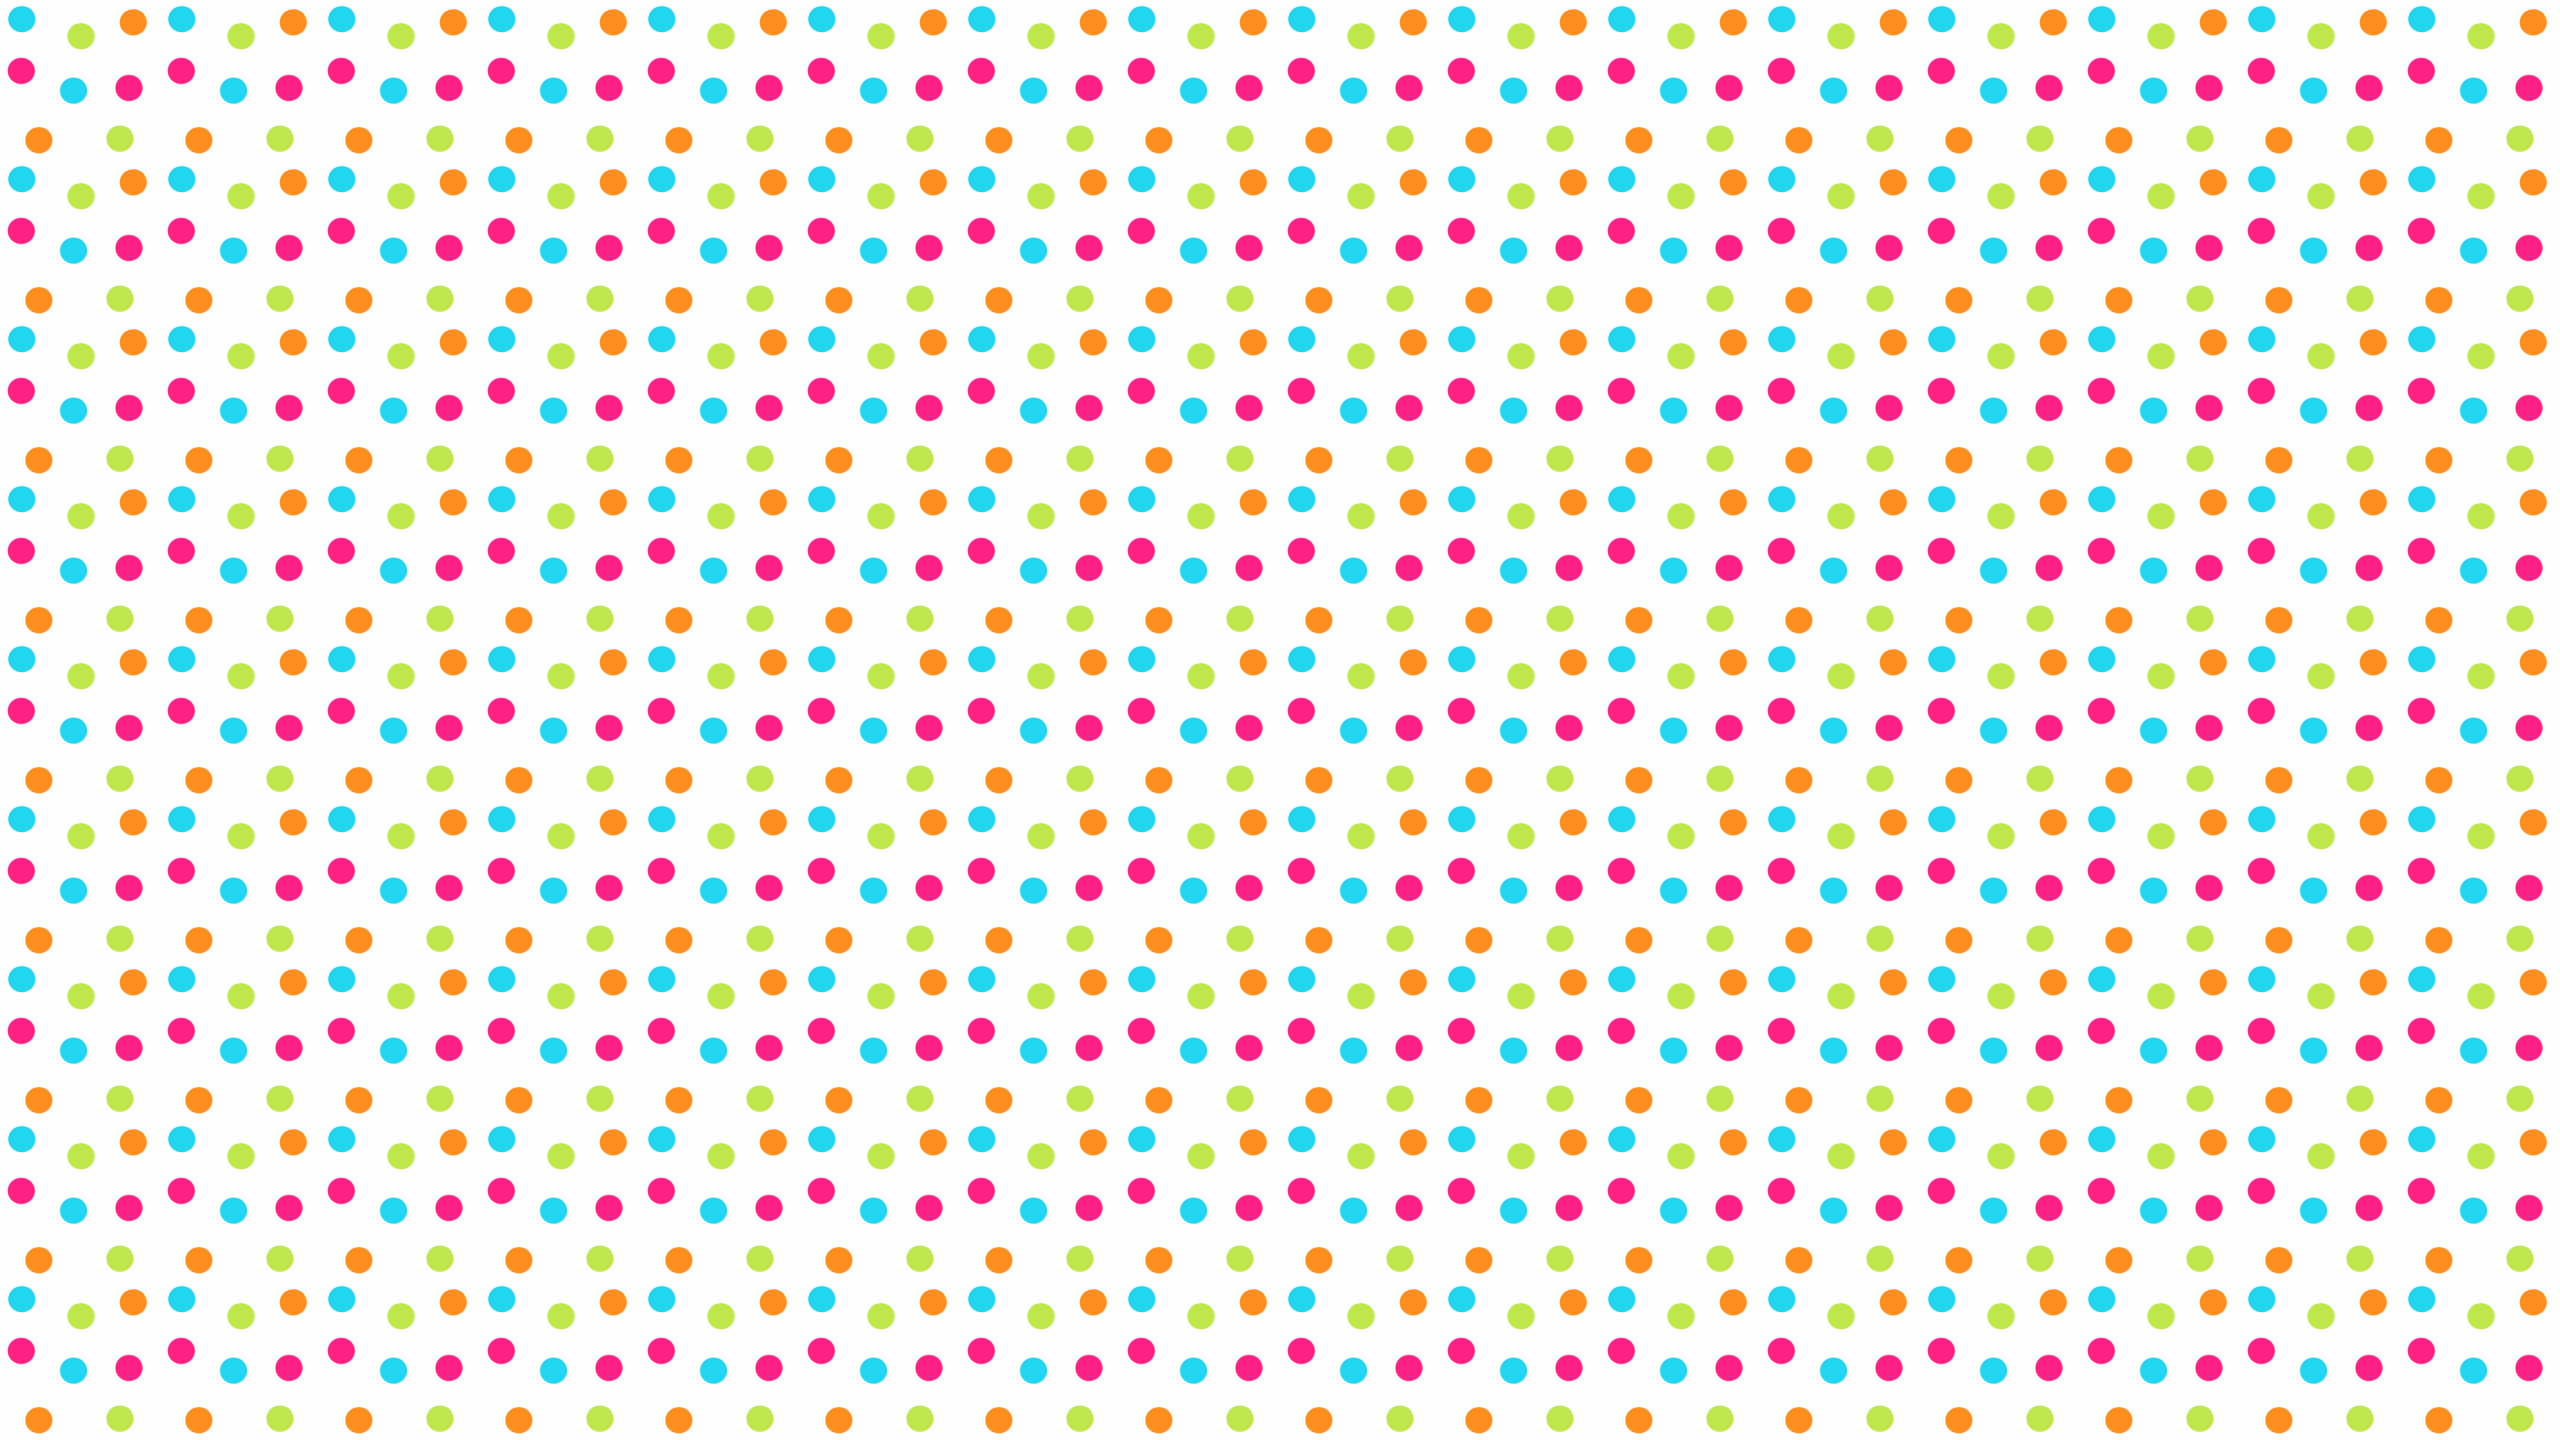 polka dot wallpapers wallpapersafari